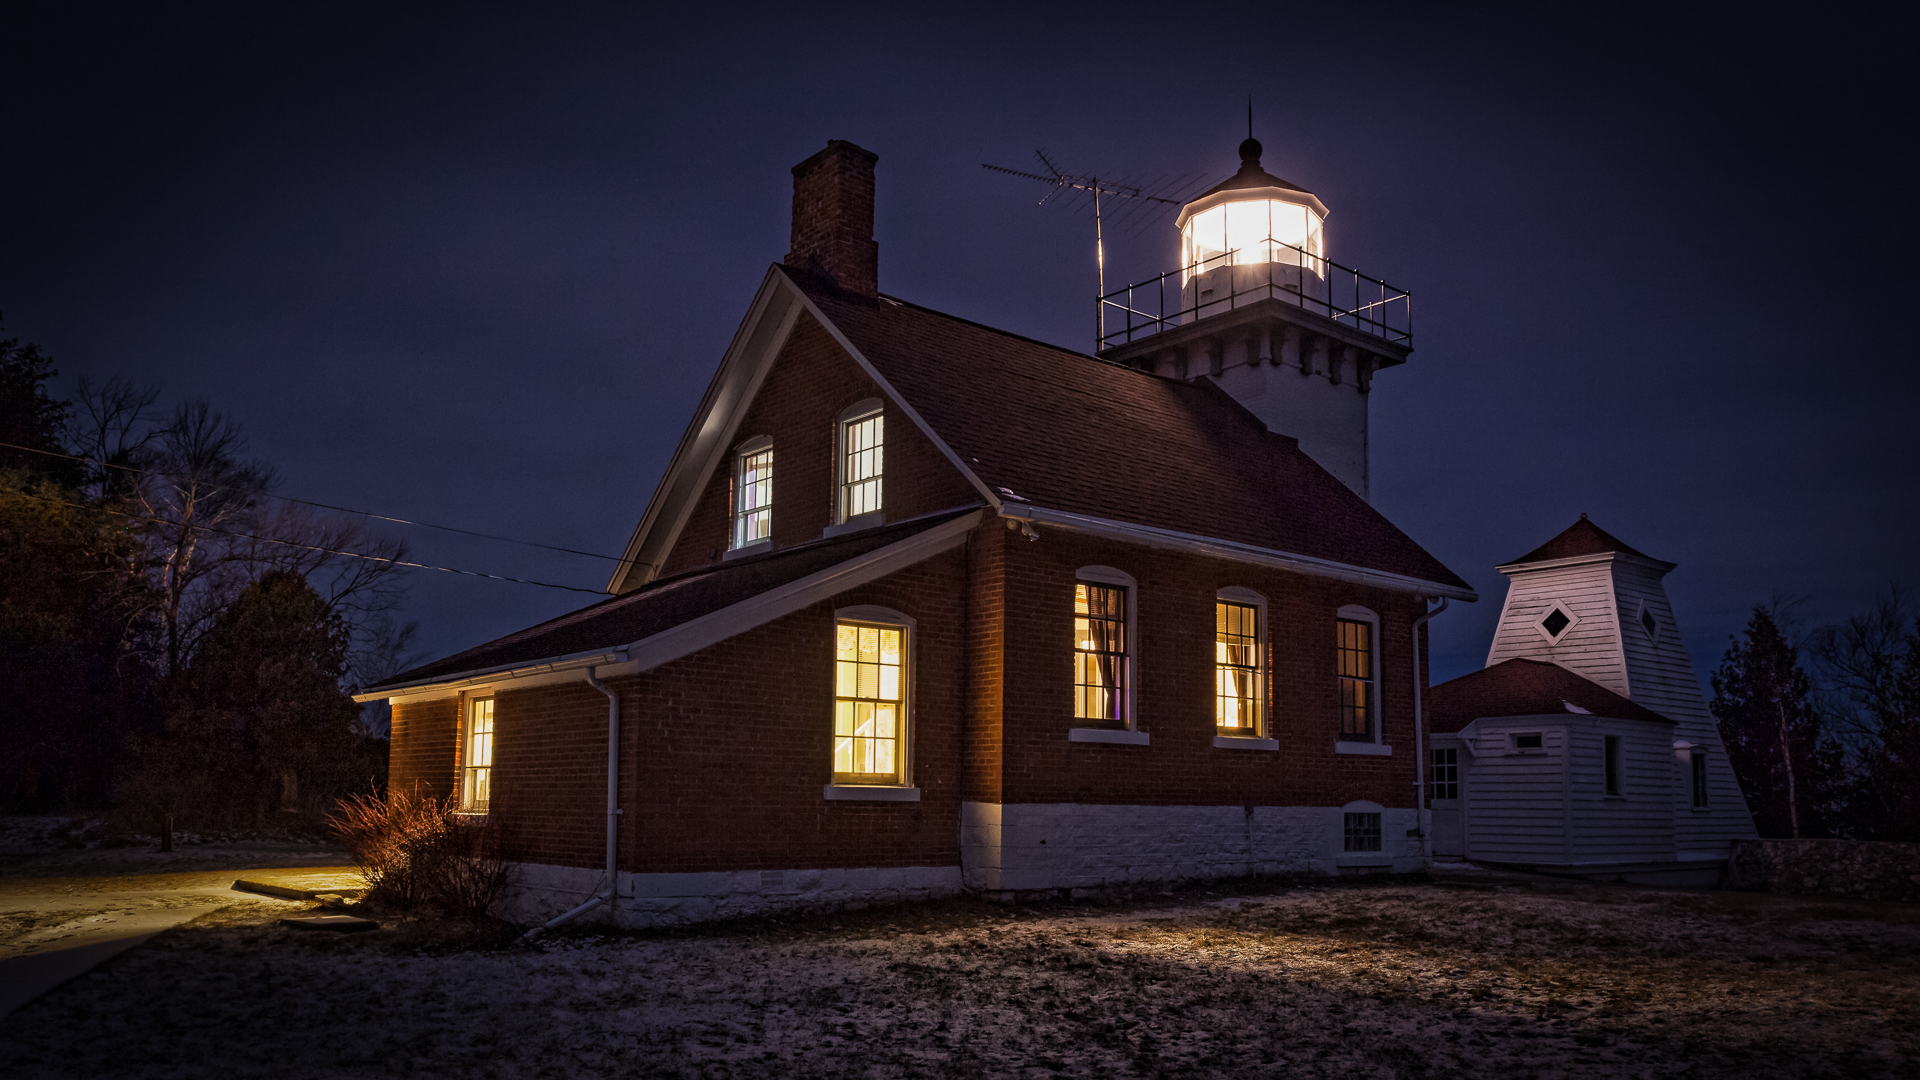 Sherwood Point Lighthouse, Door County Wisconsin - Digital (Artificial Light) - Joe Schufman